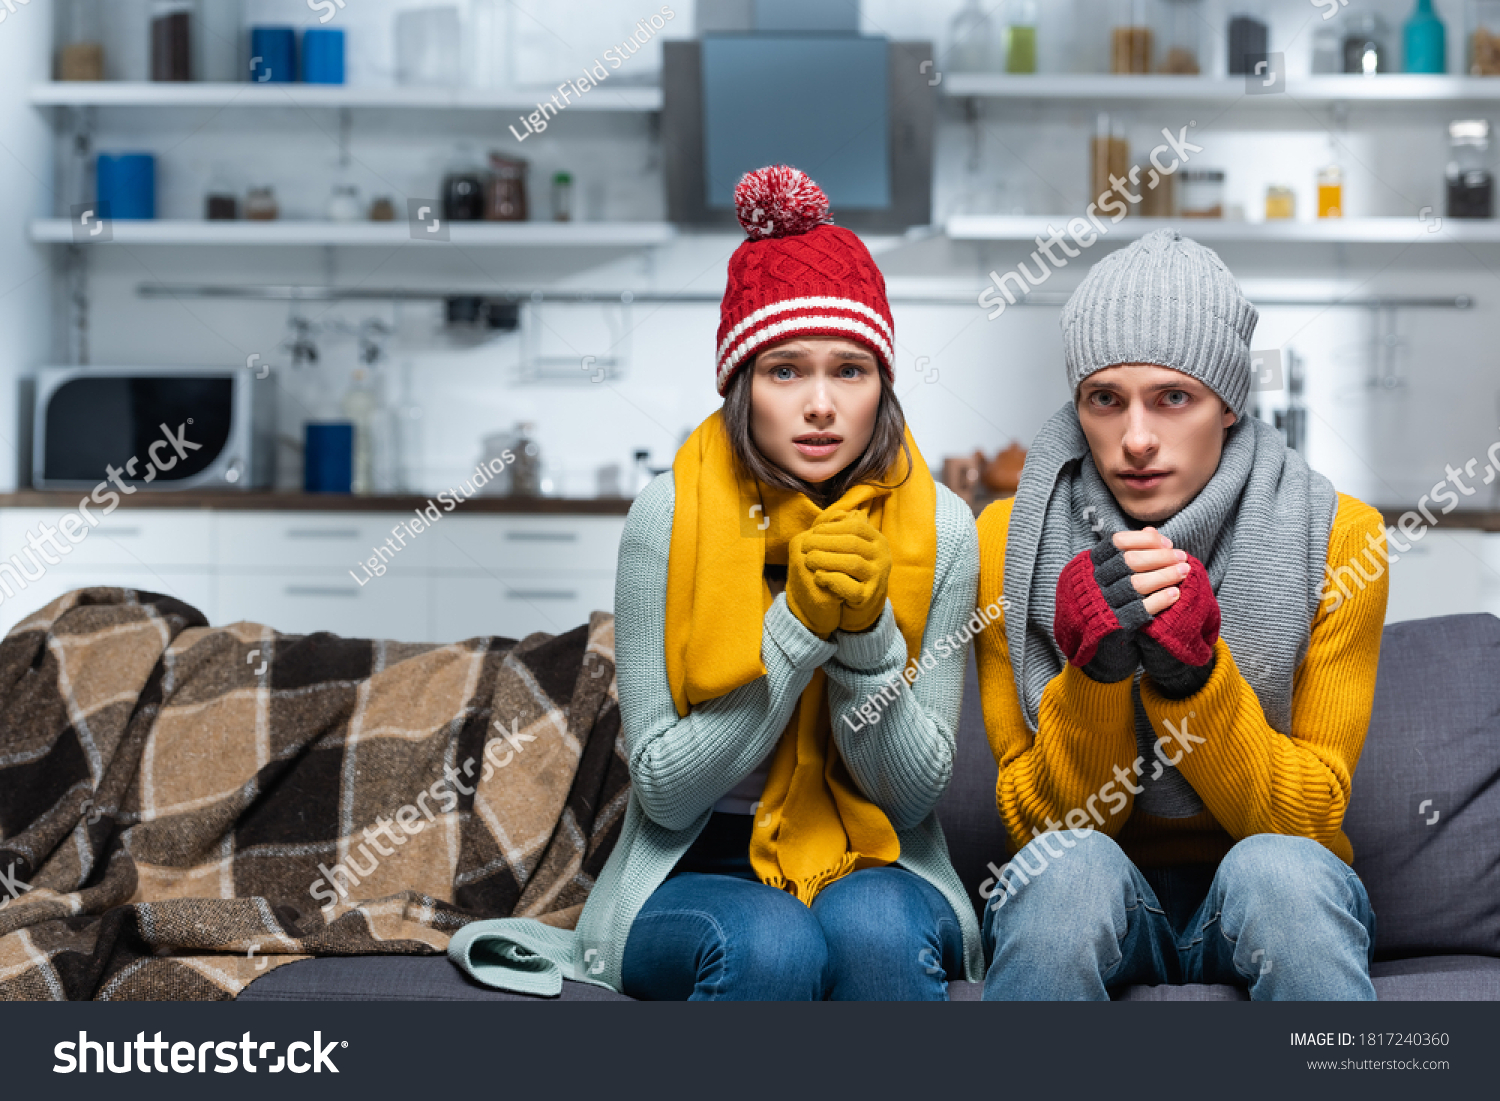 freezing couple in warm hats and gloves looking at camera while sitting on sofa in cold kitchen #1817240360